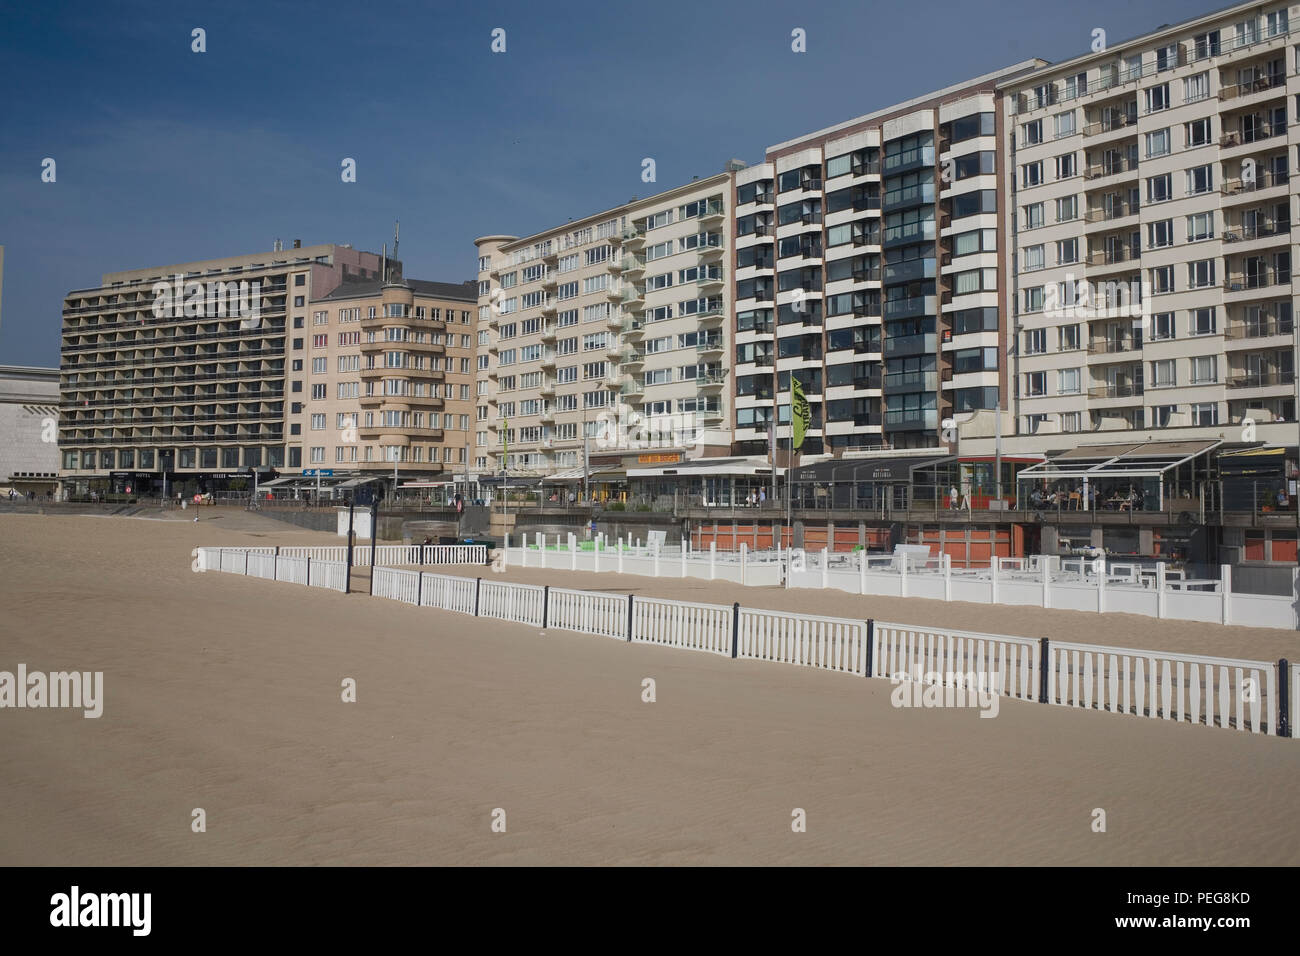 Seafront by Albert I promenade with fenced section of beach - Stock Image